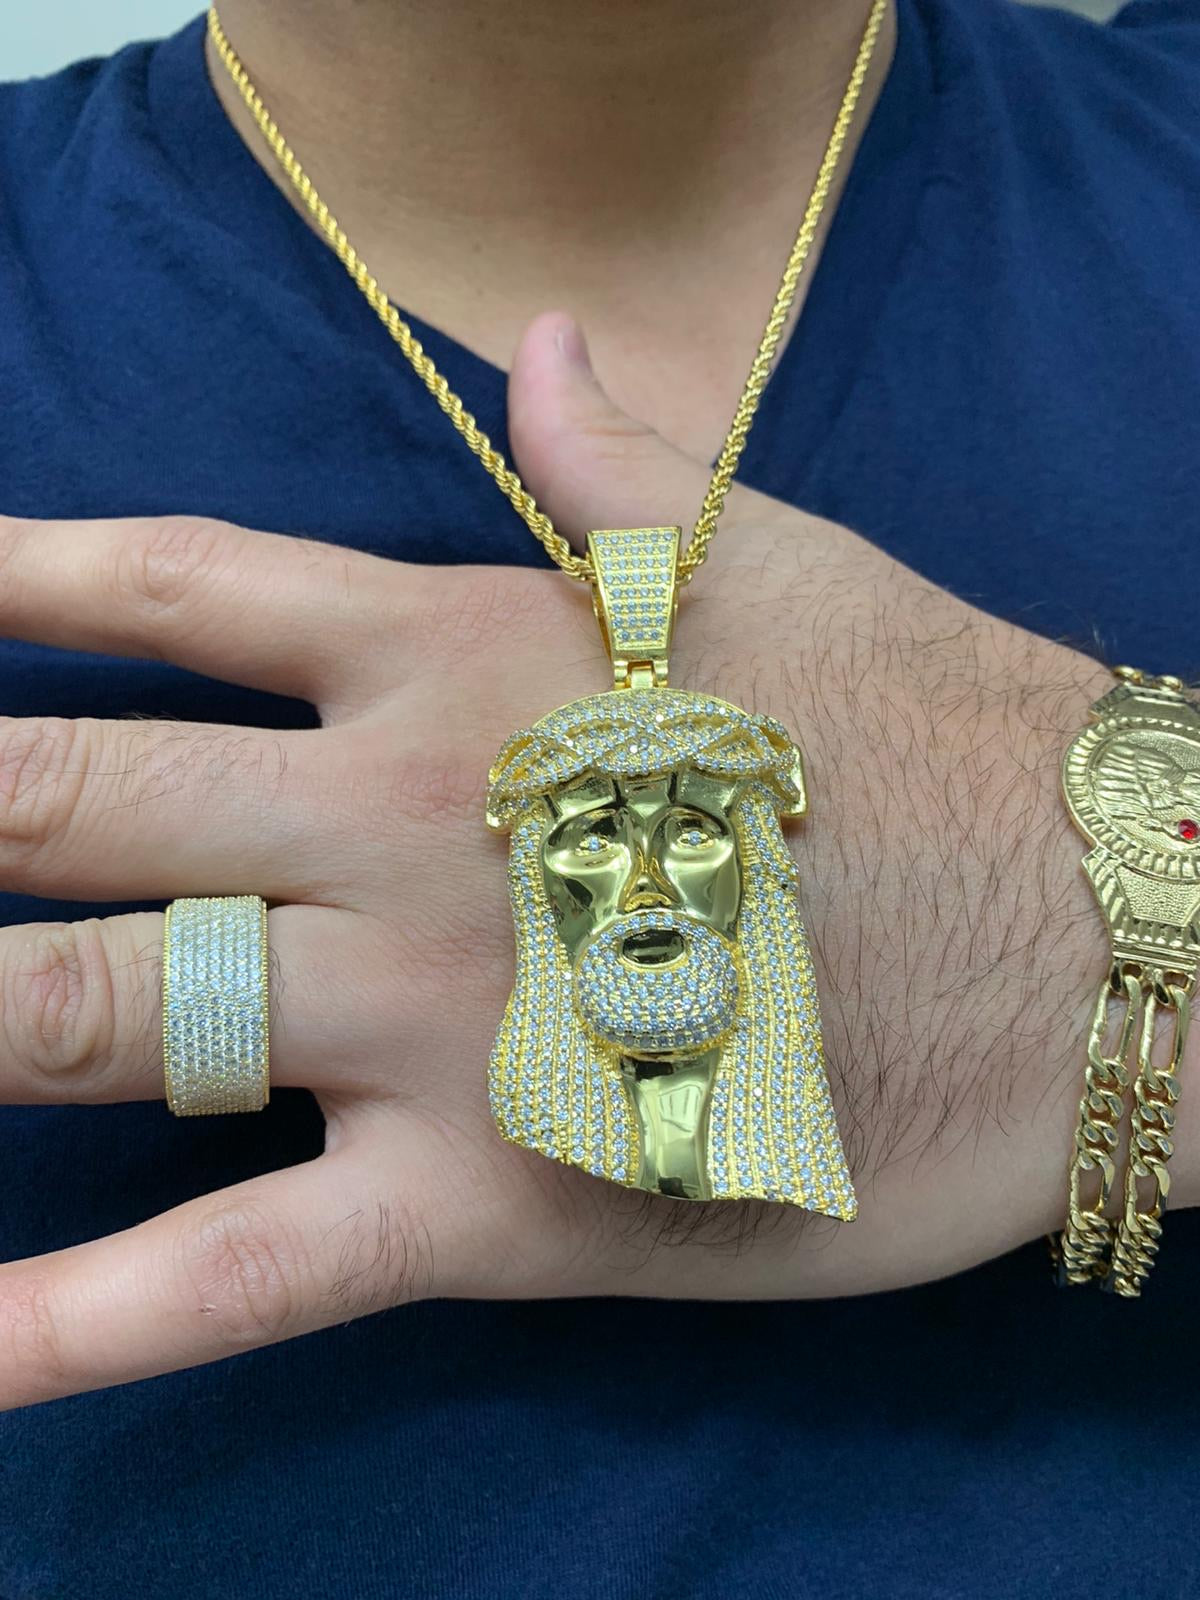 Jesus piece and chain